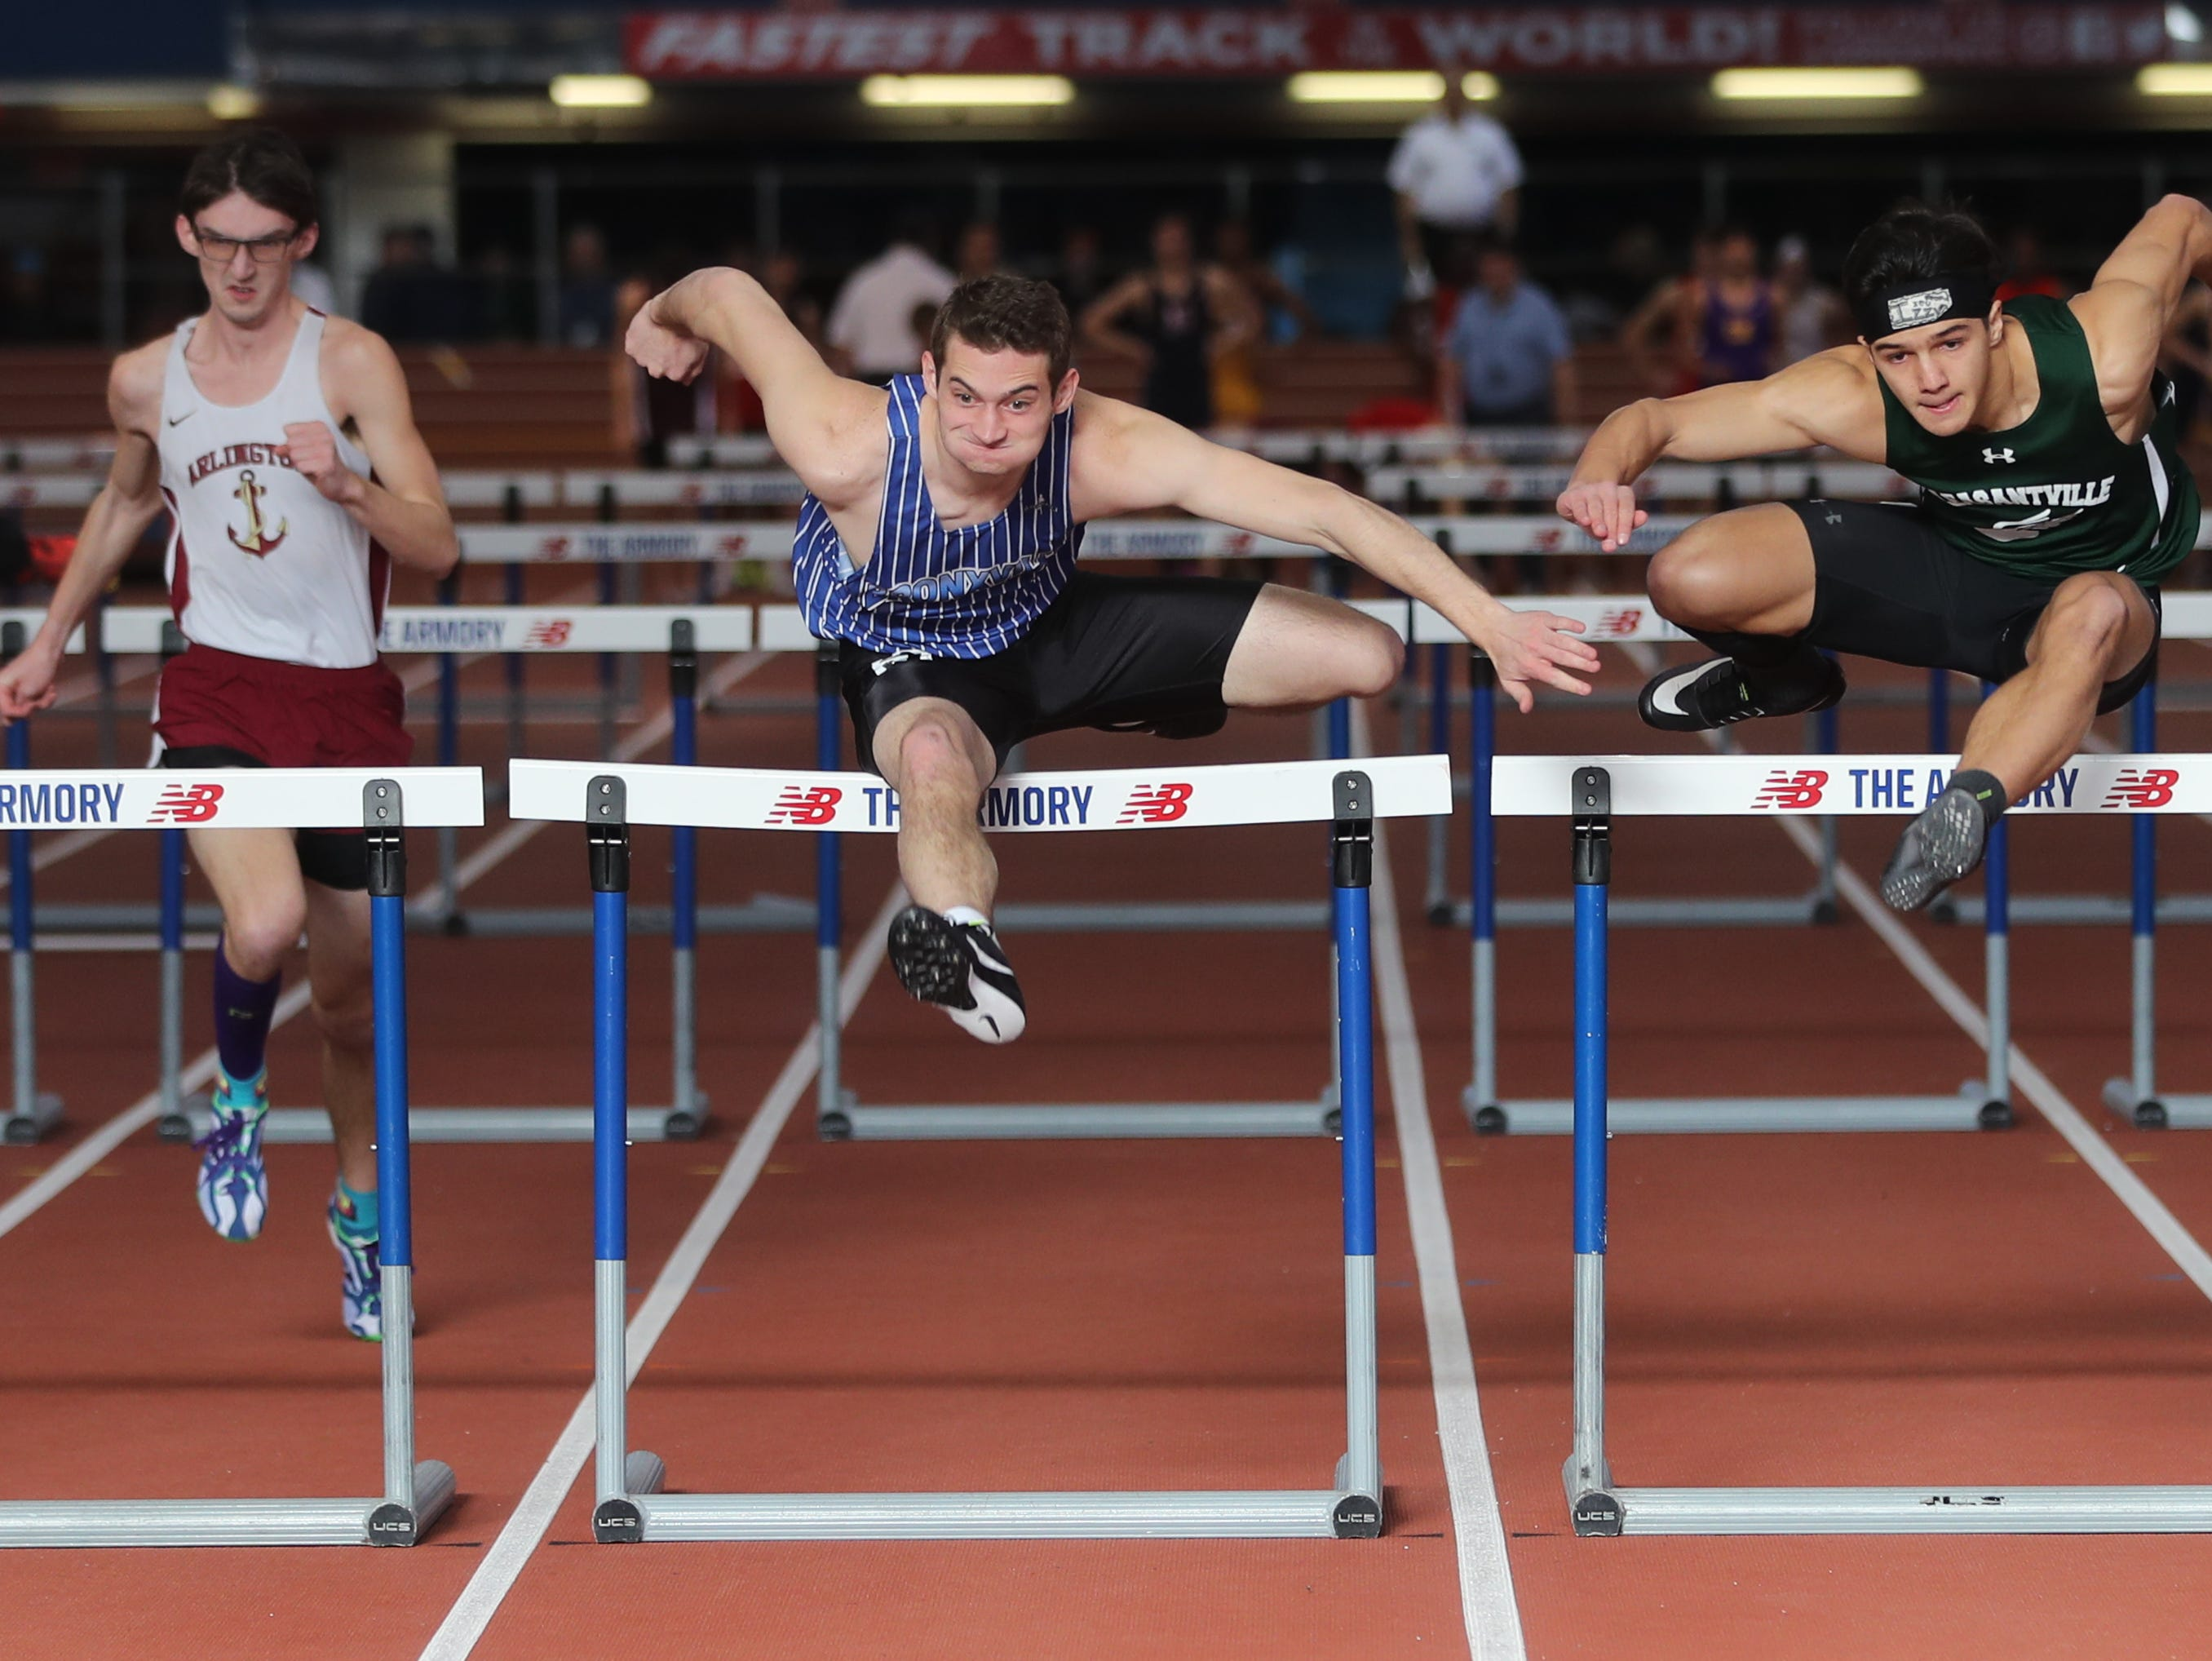 Seamus Watters of Bronxville and Adrian Rippstein of Pleasantville tied for first place in their heat of the 55 meter hurdles during the Section 1 New York State Track and Field State Qualifier at the New Balance Armory in Manhattan Feb. 17, 2019.